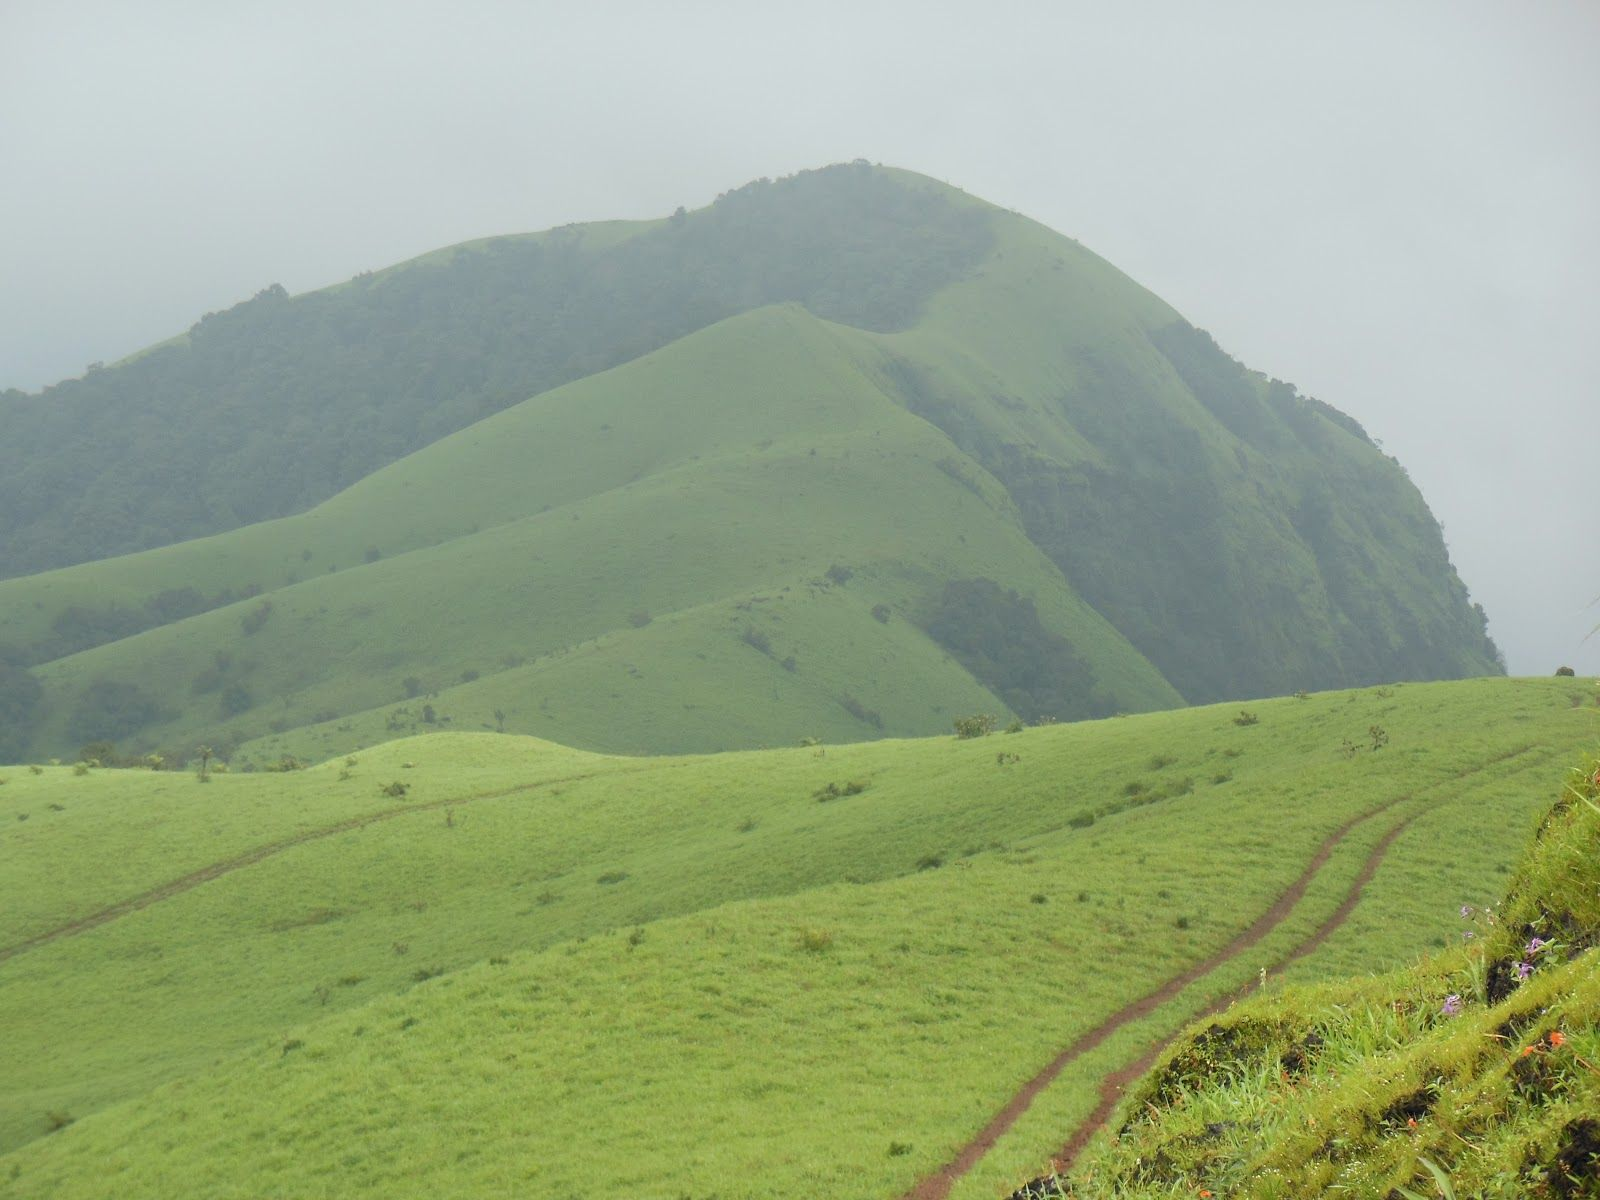 Kodachadri Is A Mountain Peak With Dense Forests Elevation - Metres above sea level